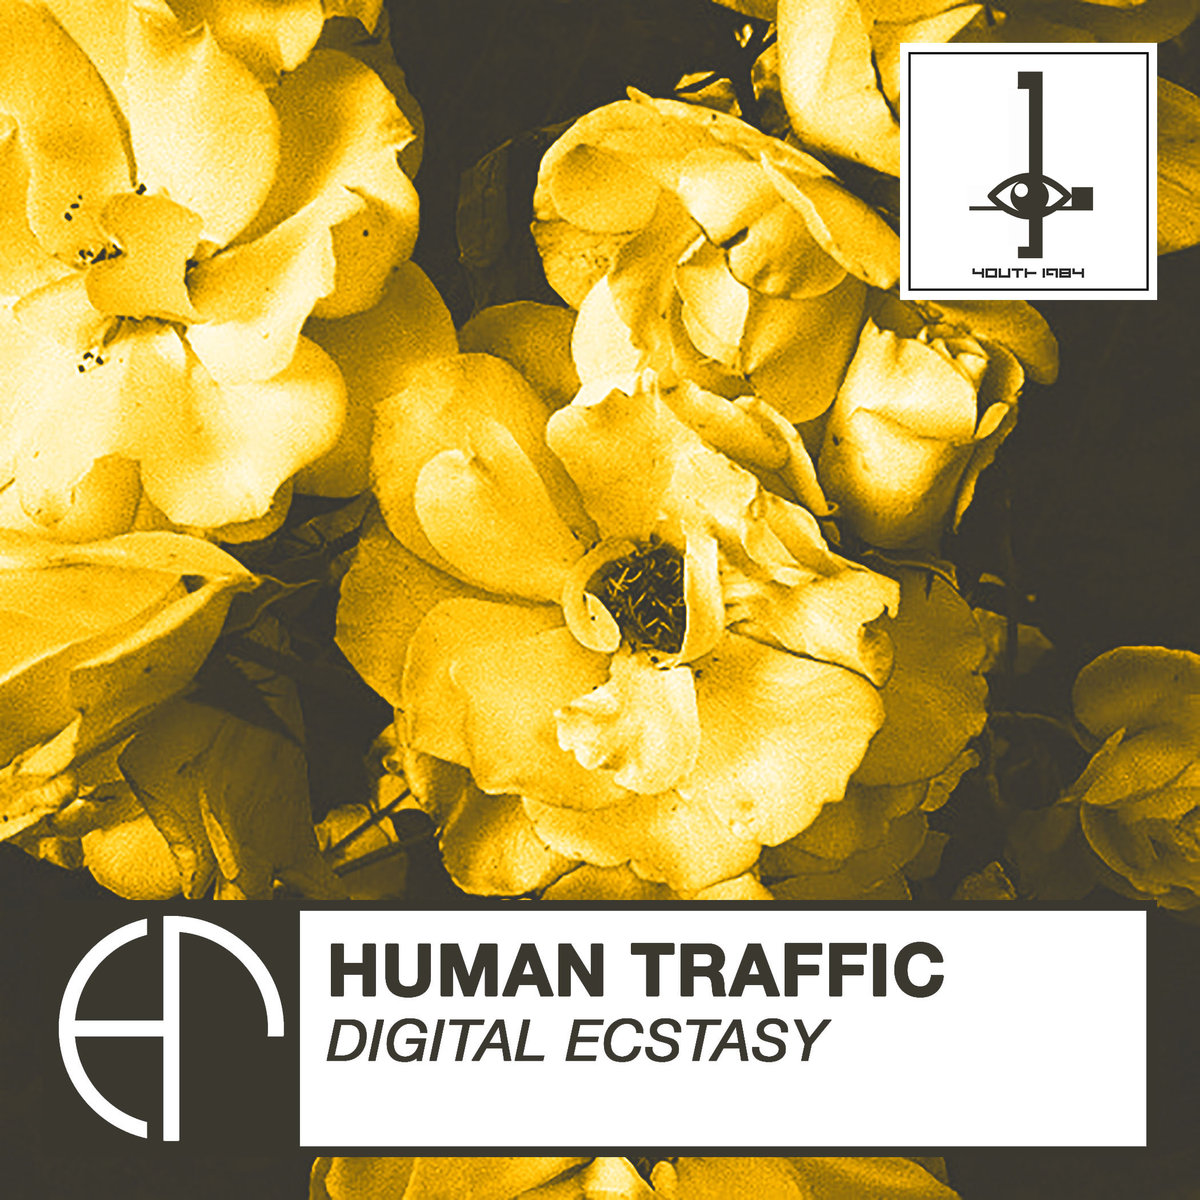 HUMAN TRAFFIC - DIGITAL ECSTASY